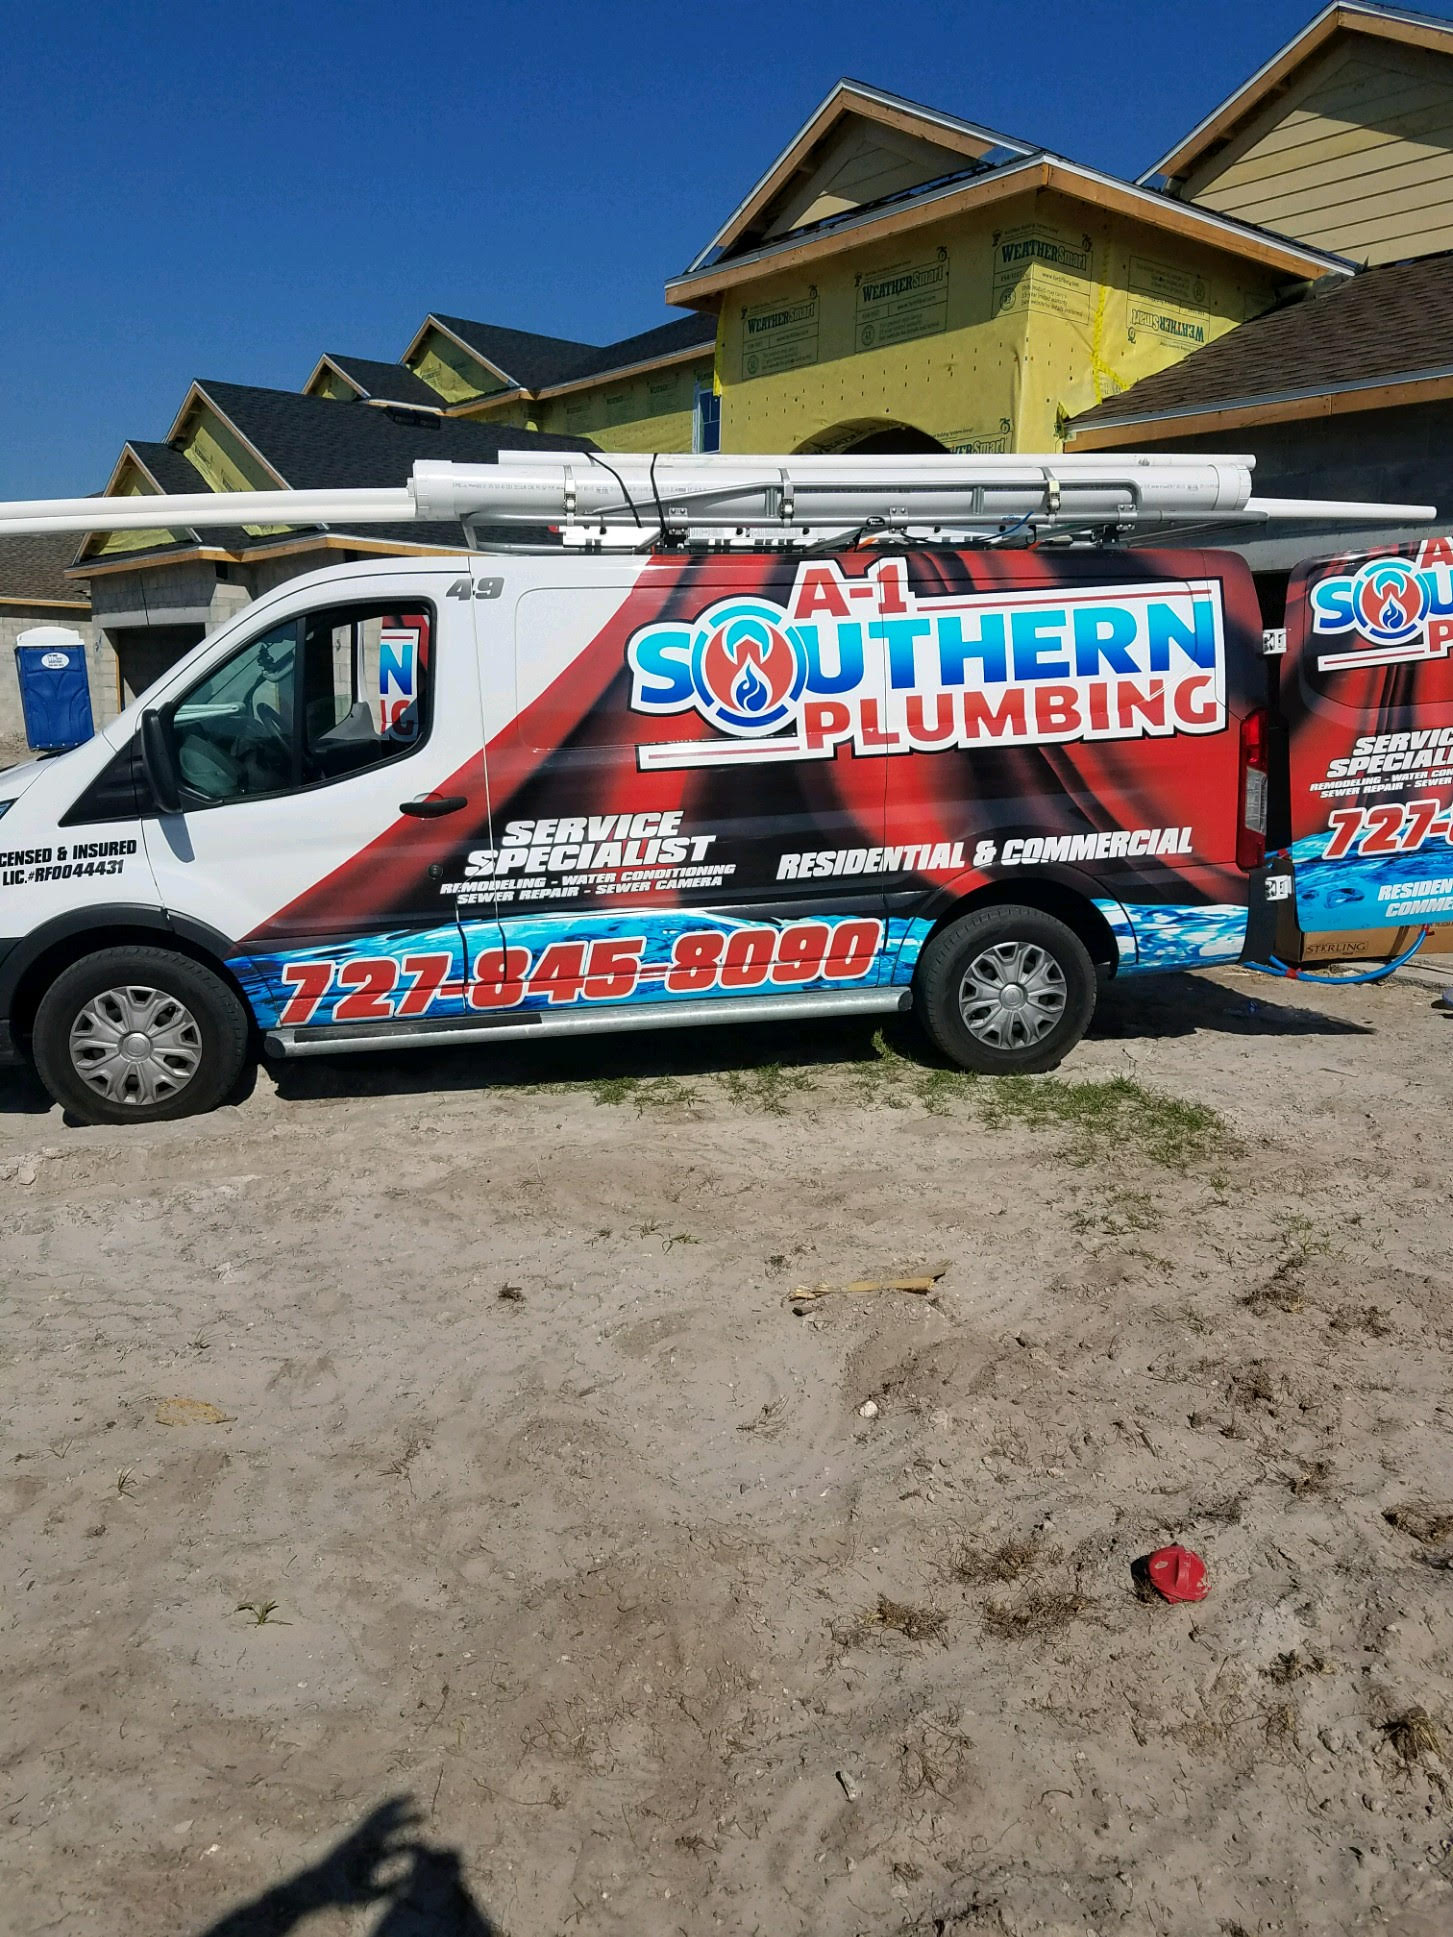 New Construction A-1 Southern Plumbing